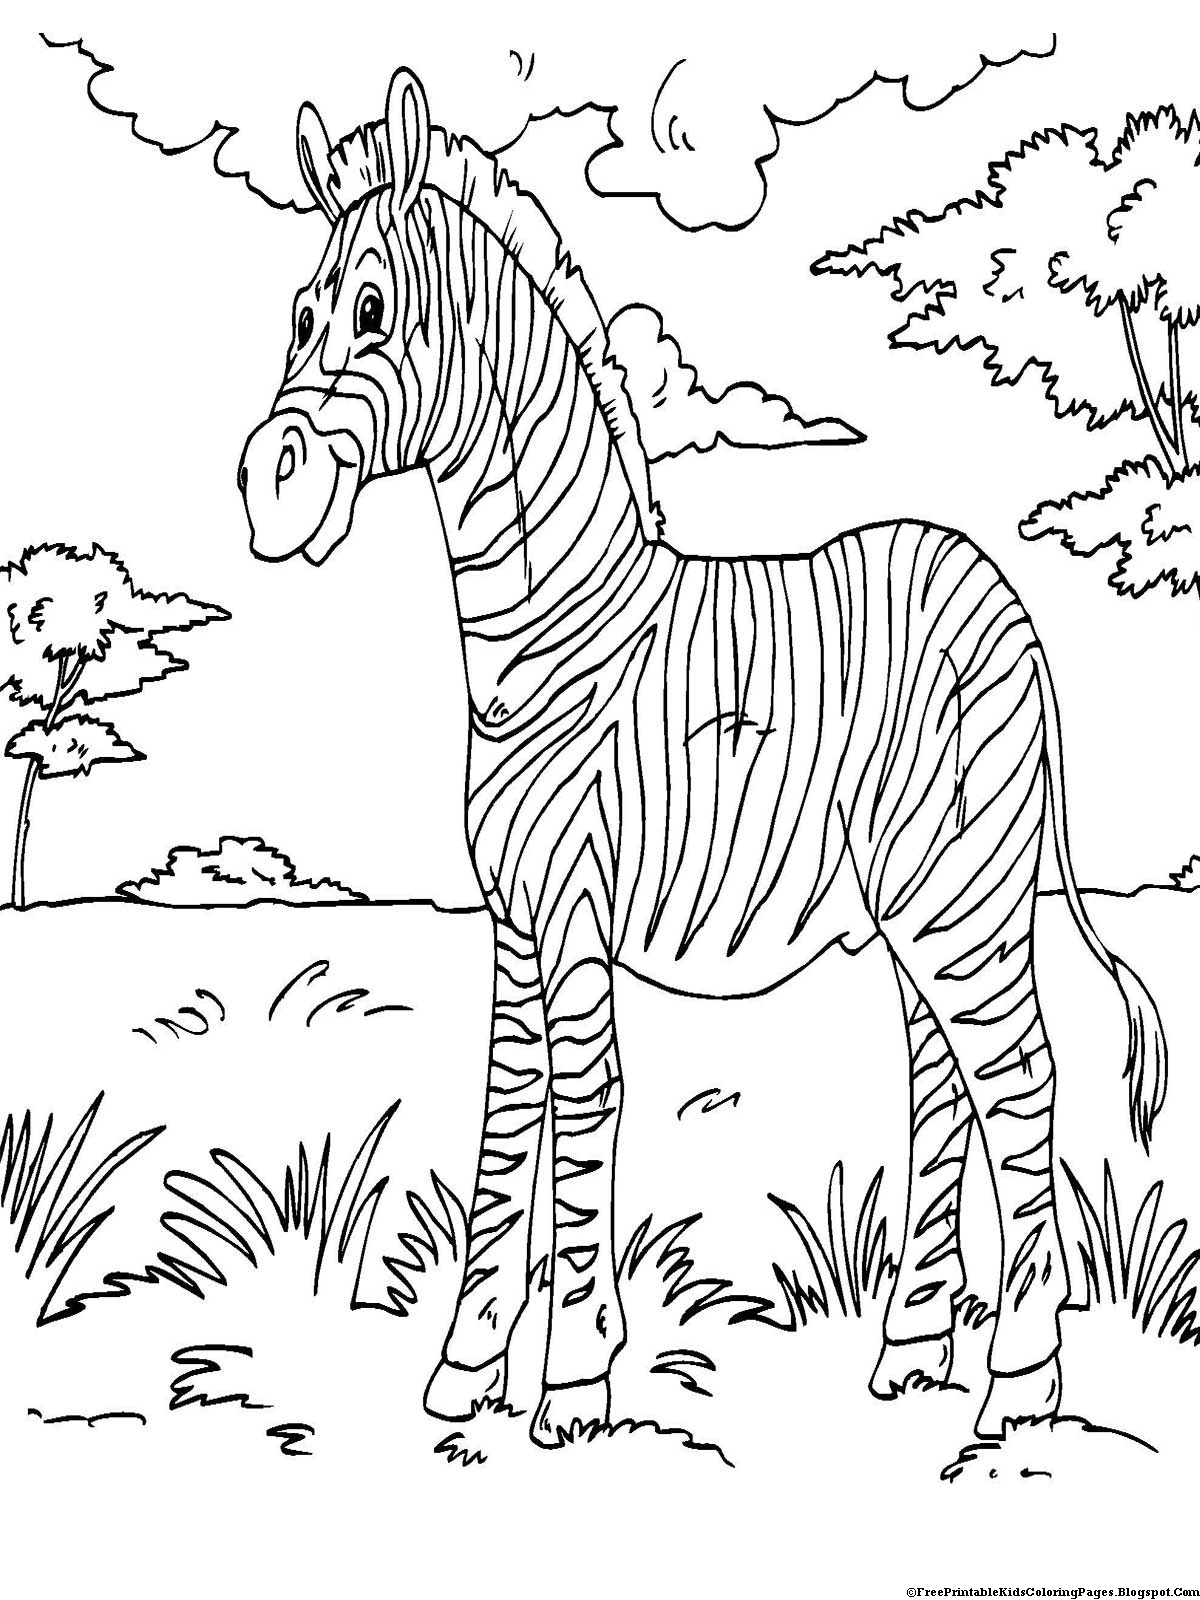 colouring pages to print free zebra coloring pages free printable kids coloring pages to colouring free print pages